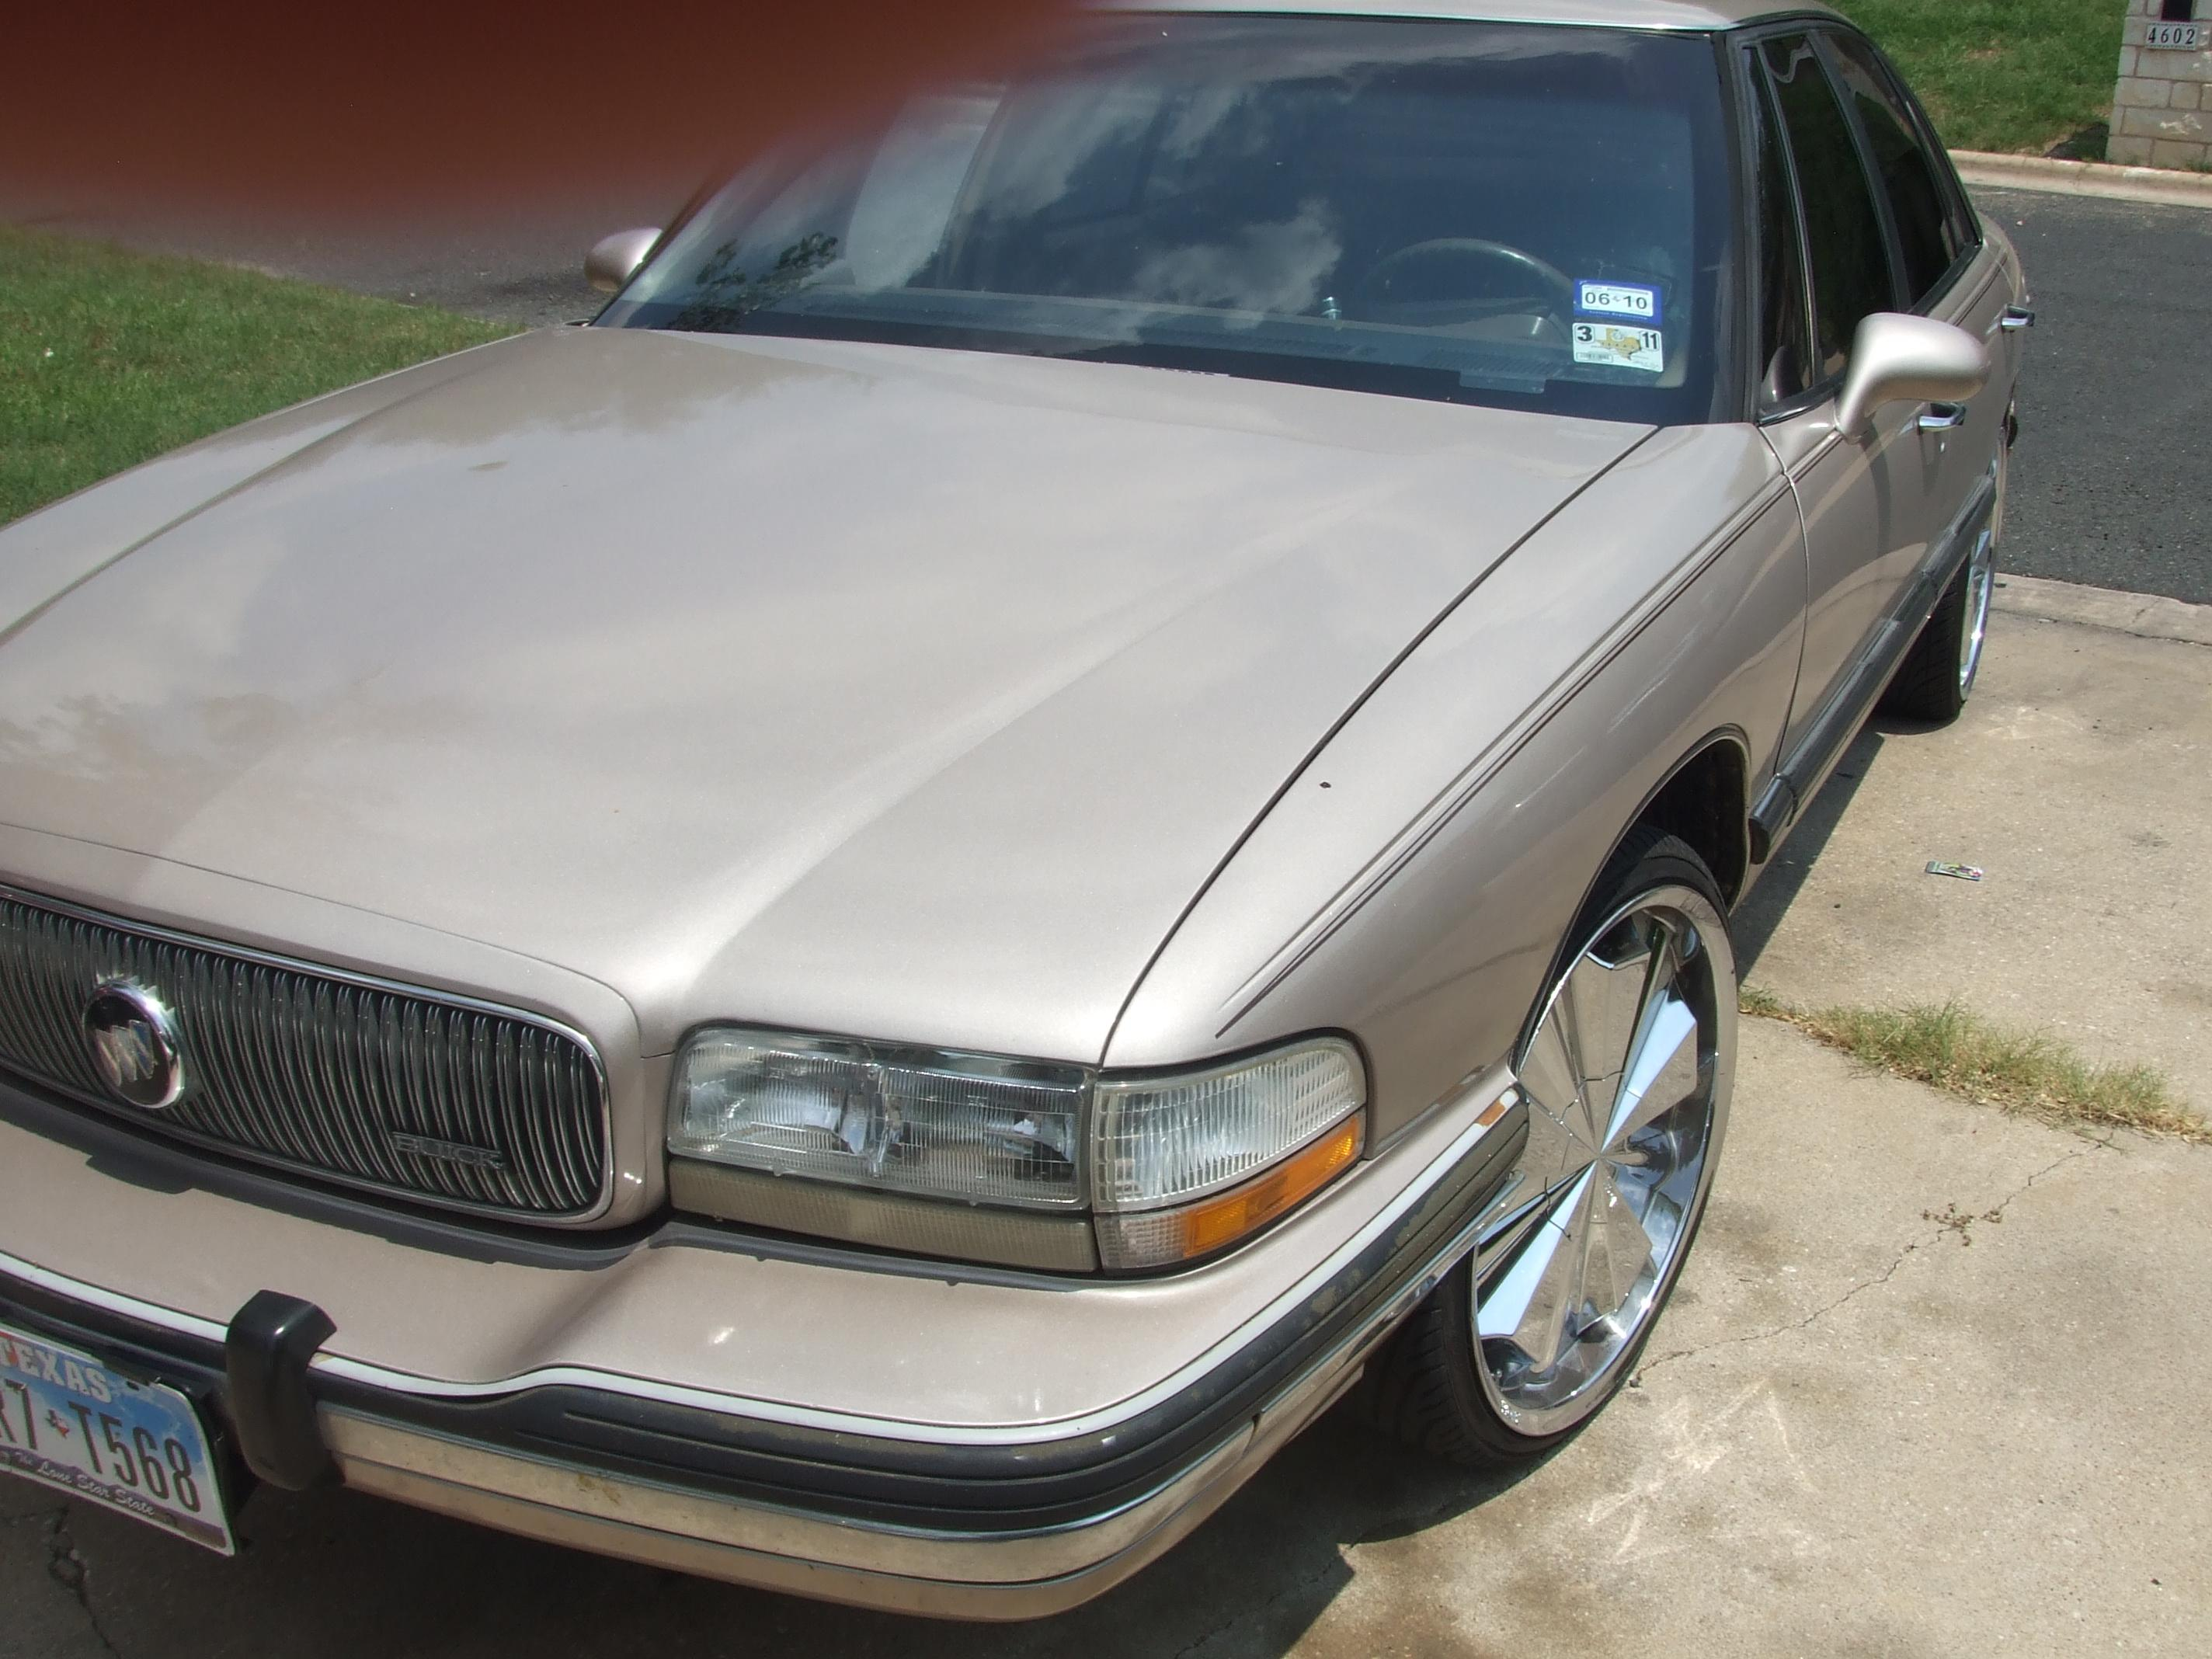 bigdaddychevy 1993 buick lesabrelimited sedan 4d specs. Black Bedroom Furniture Sets. Home Design Ideas